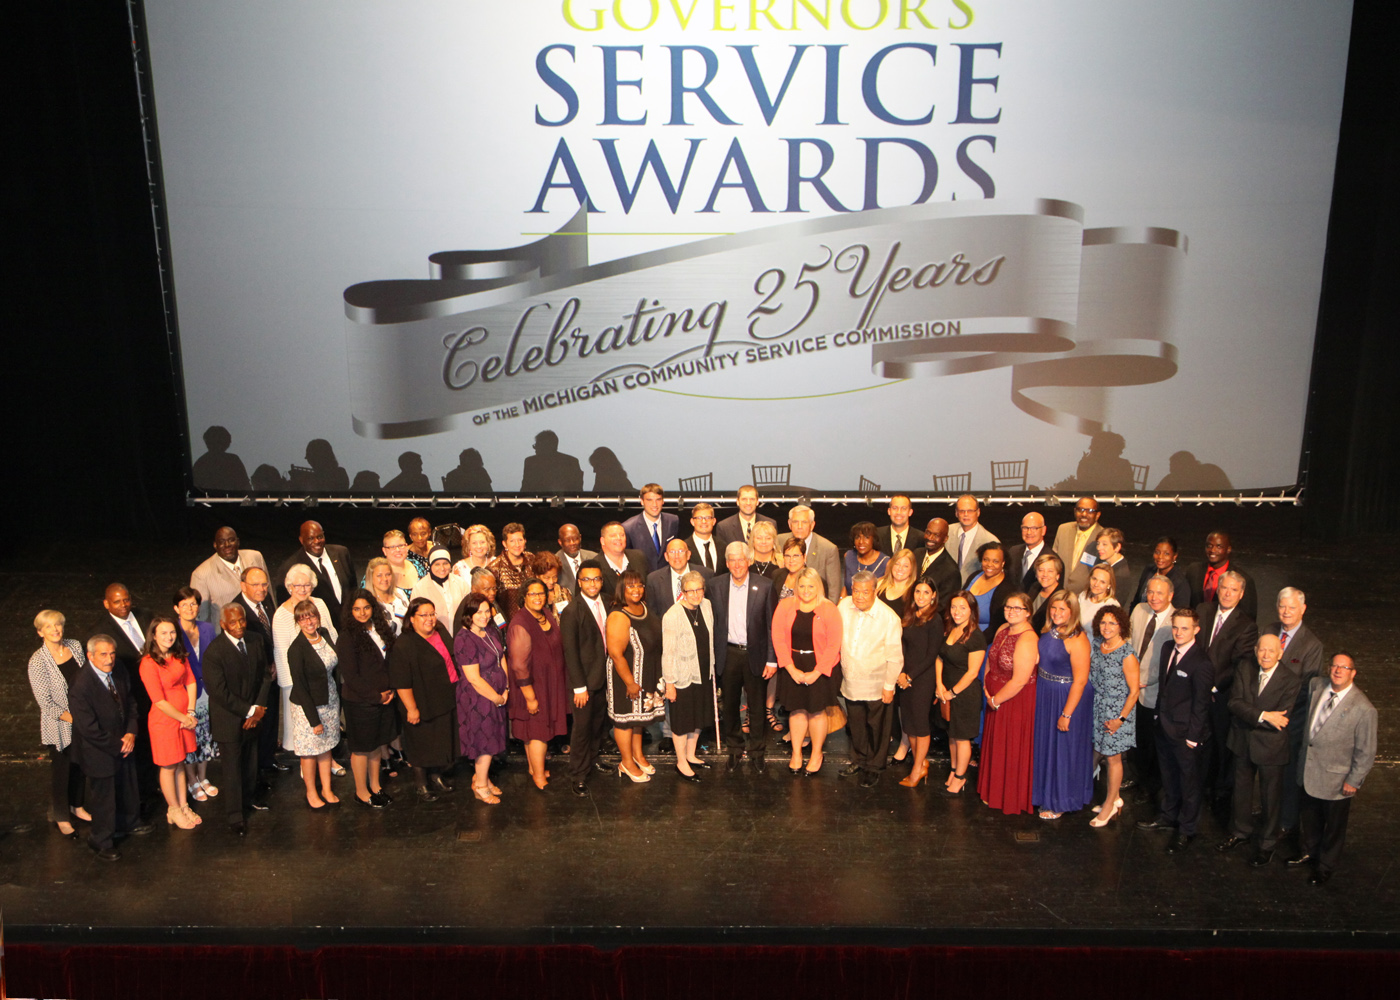 Gov_Service_Awards_2017_All_Honorees_598927_7